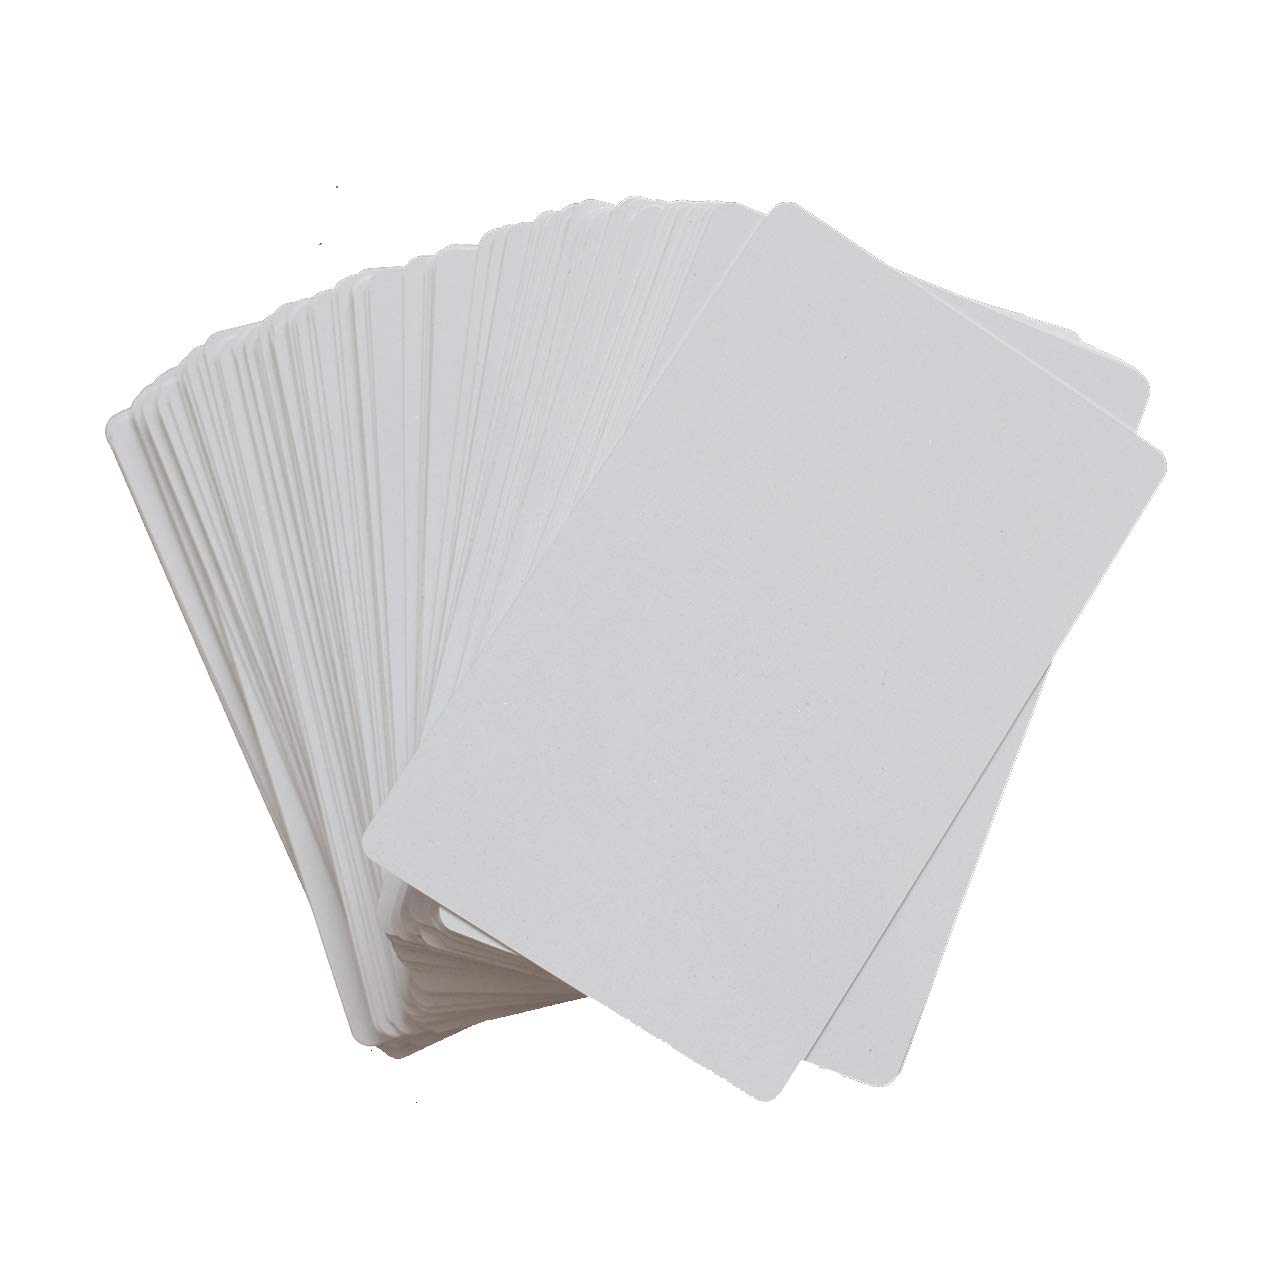 100pcs sublimation Metal business cards laser engraved Metal Business Cards Sublimation Blanks 3.4x2.1in Thicknes (0.30mm) (White)